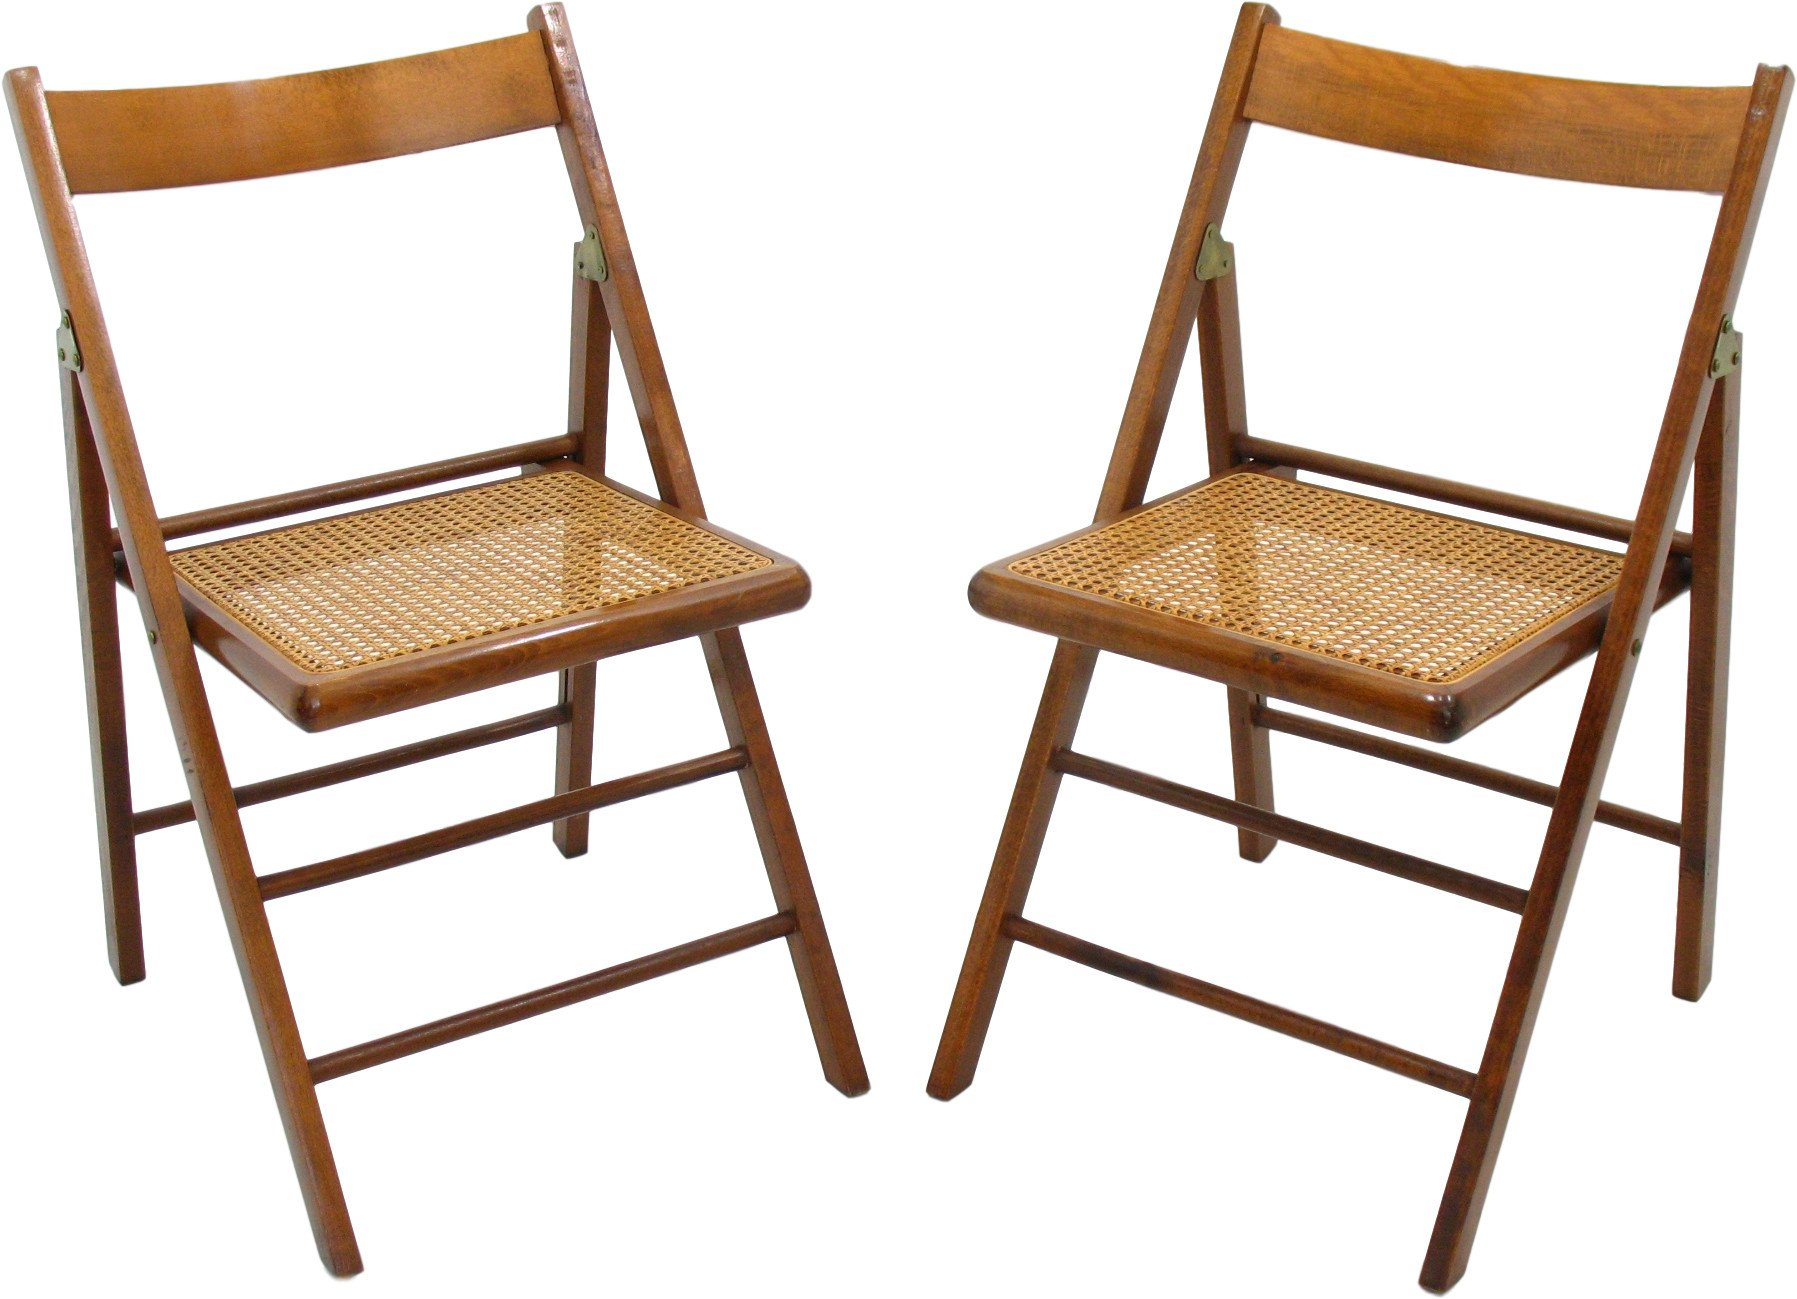 Pair of Foldable Chairs, 1980s